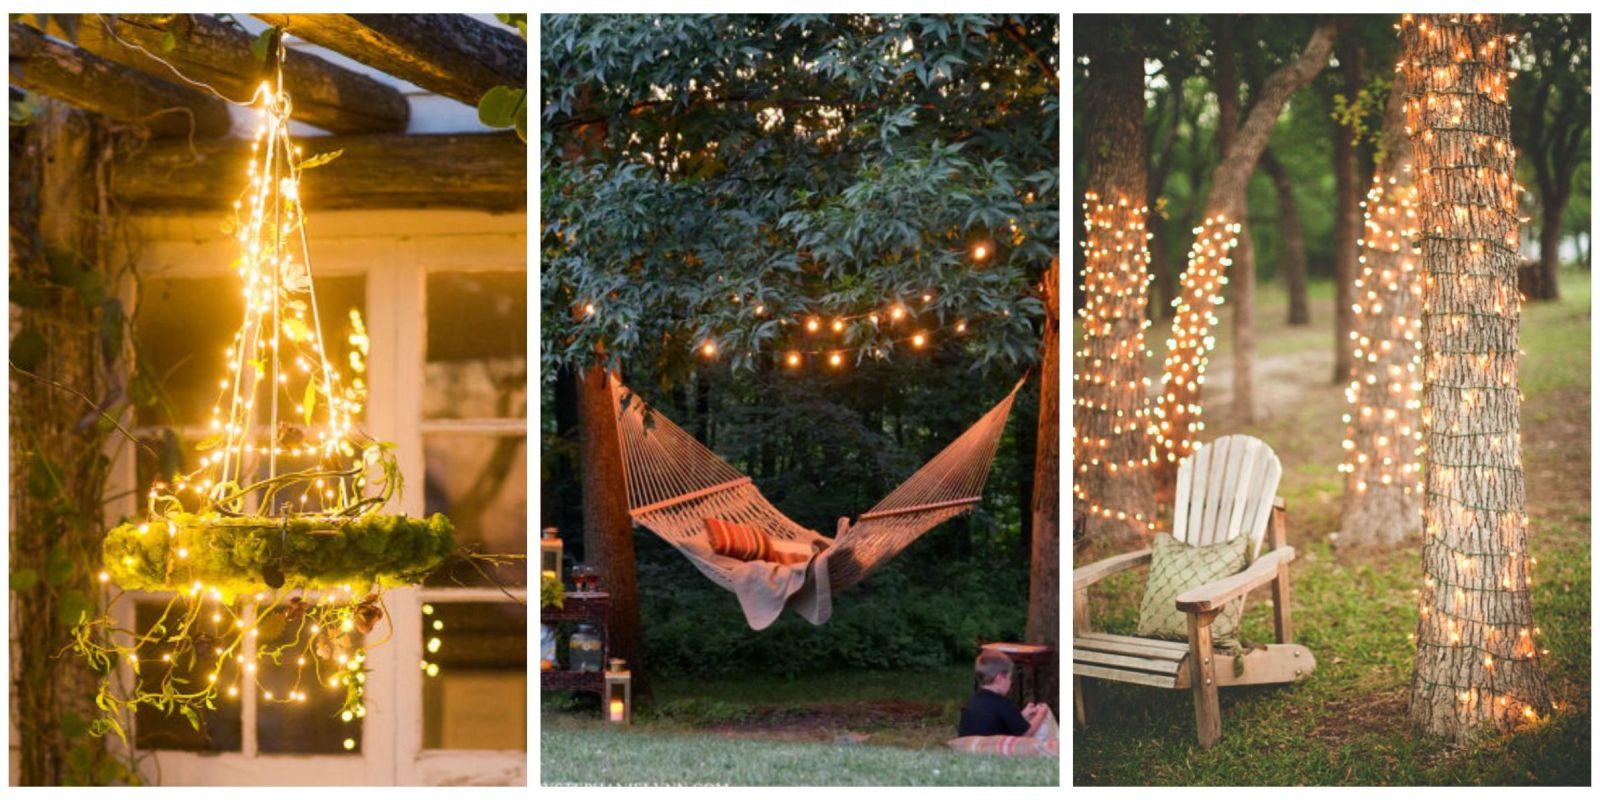 18 backyard lighting ideas how to hang outdoor string lights - Garden Ideas Lighting